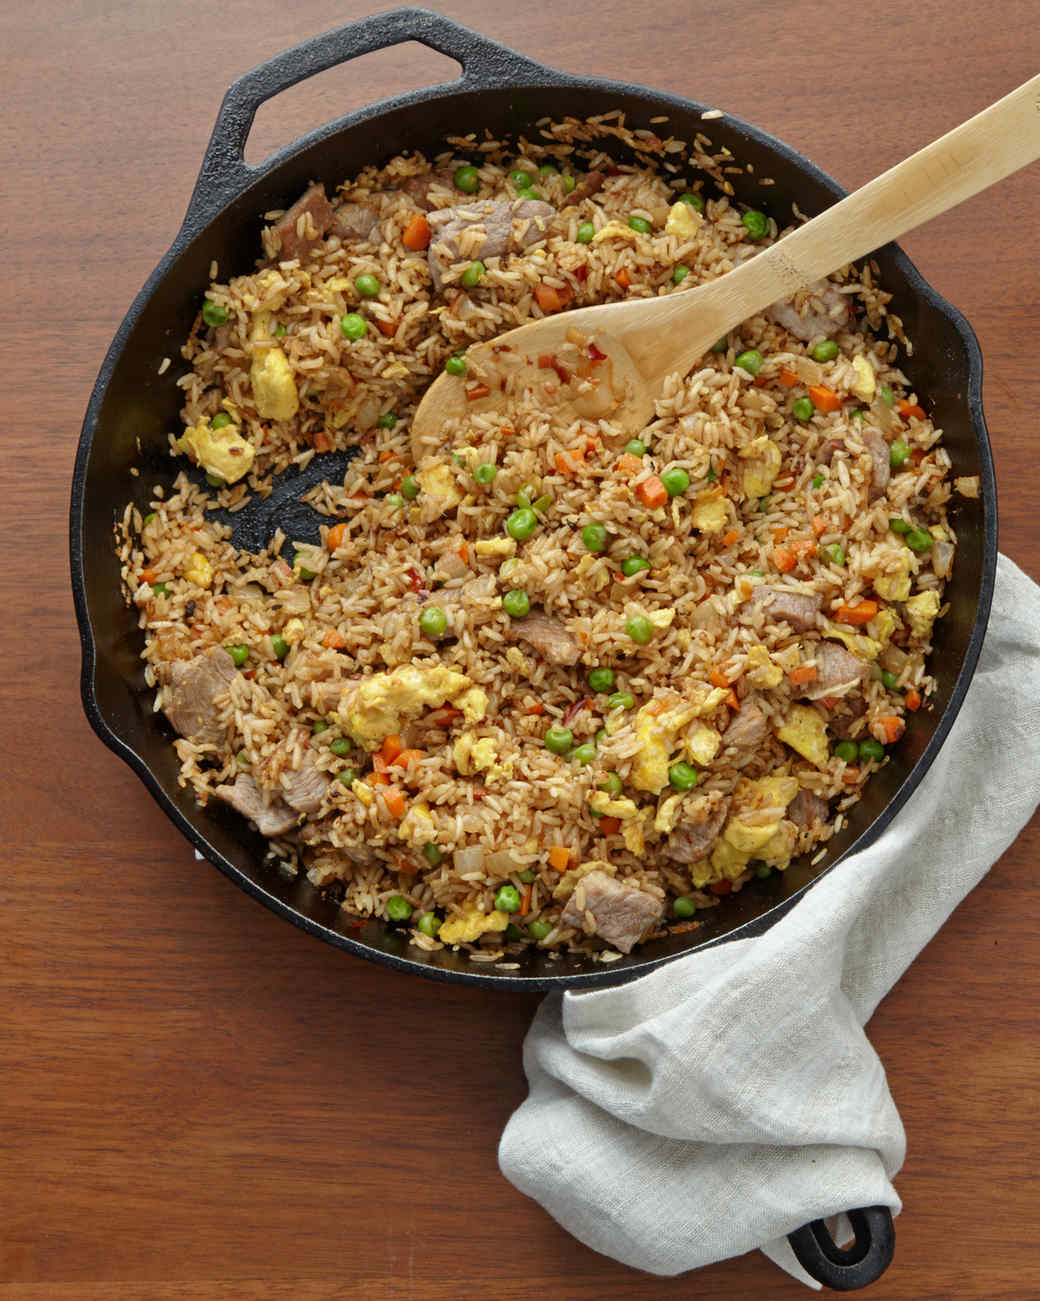 szechuan-fried-rice-0103-d112283.jpg